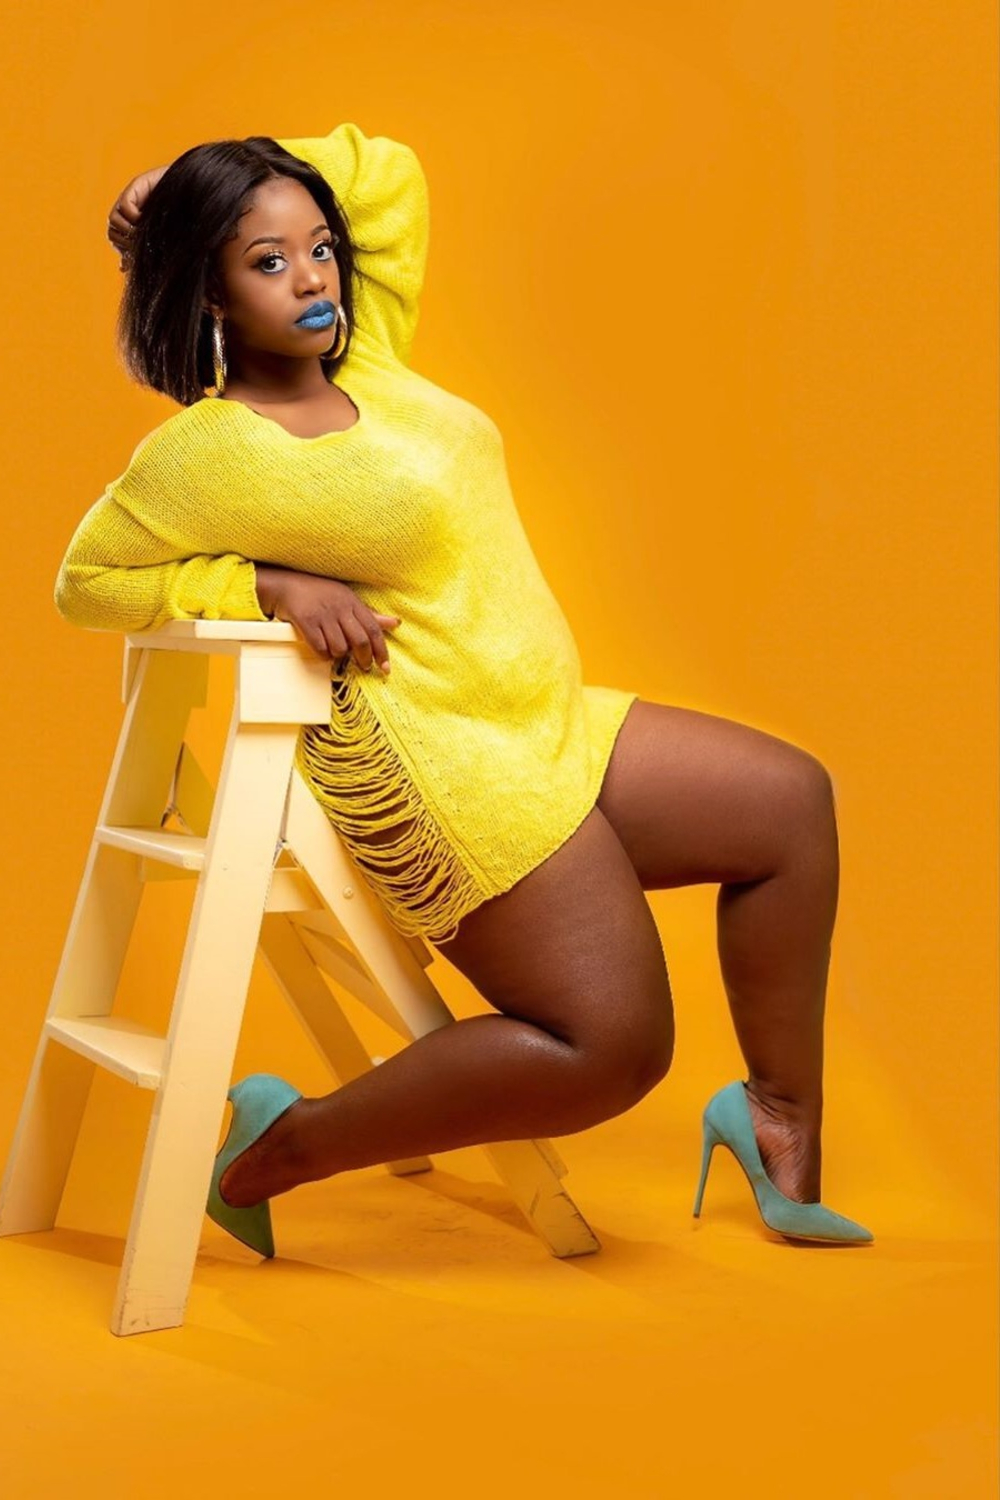 Must Read: Misred Responds To Critics Accusing Her Of